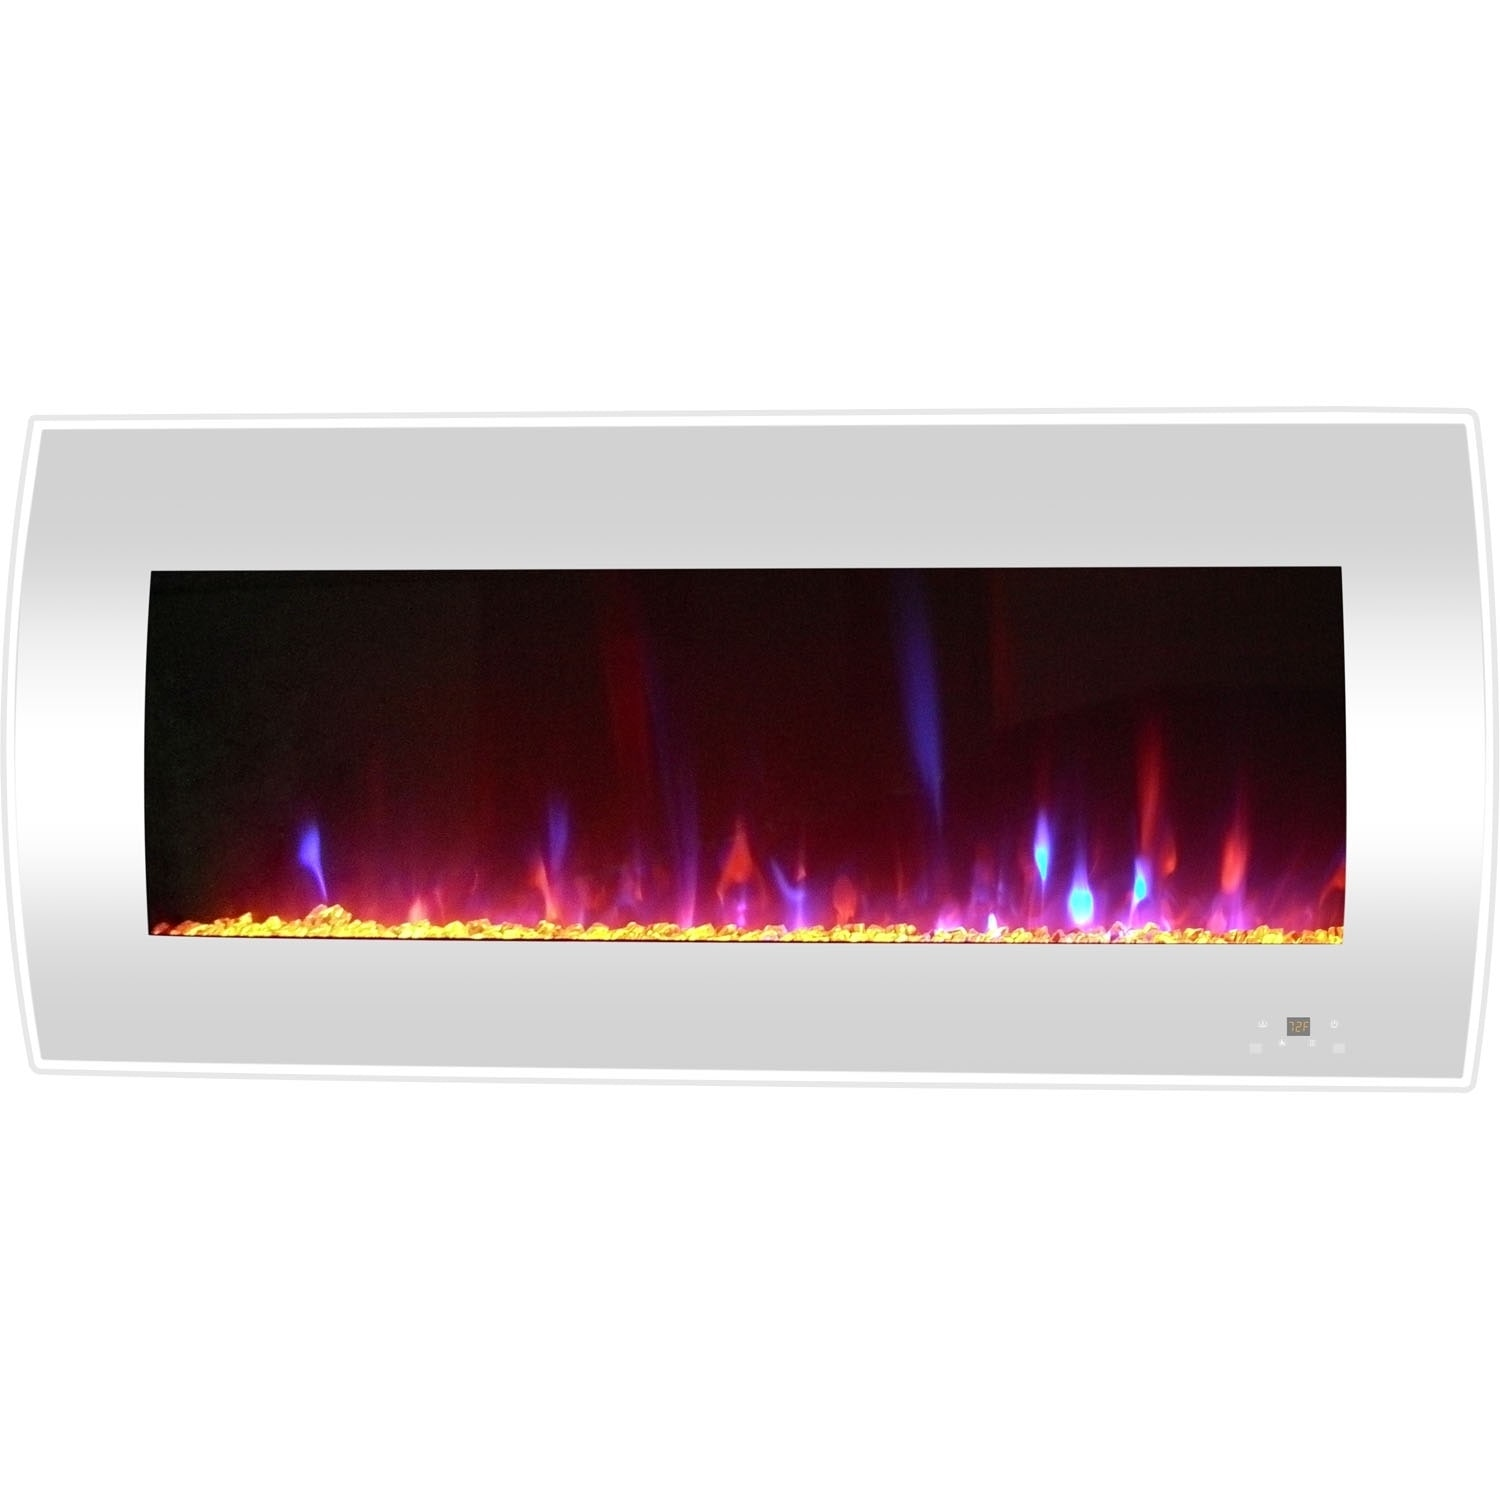 Wall Mount Fireplace Heaters Cambridge 42 In Curved Wall Mount Electric Fireplace Heater In White